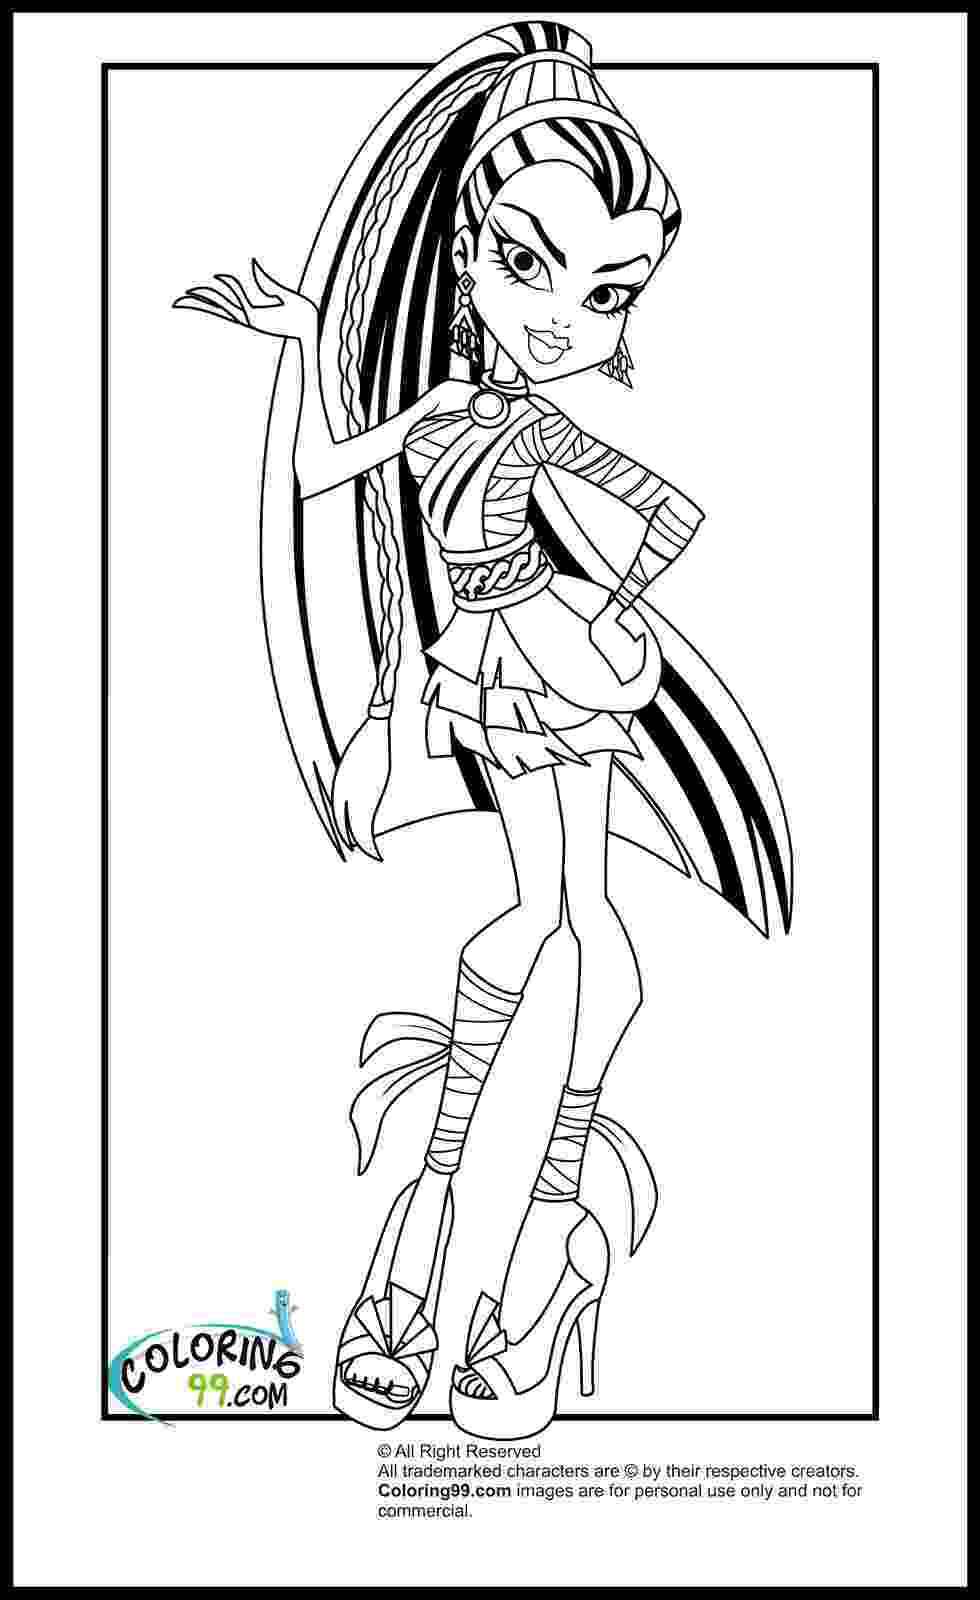 coloring pages for monster high free printable monster high coloring pages coloring pages for high monster pages coloring